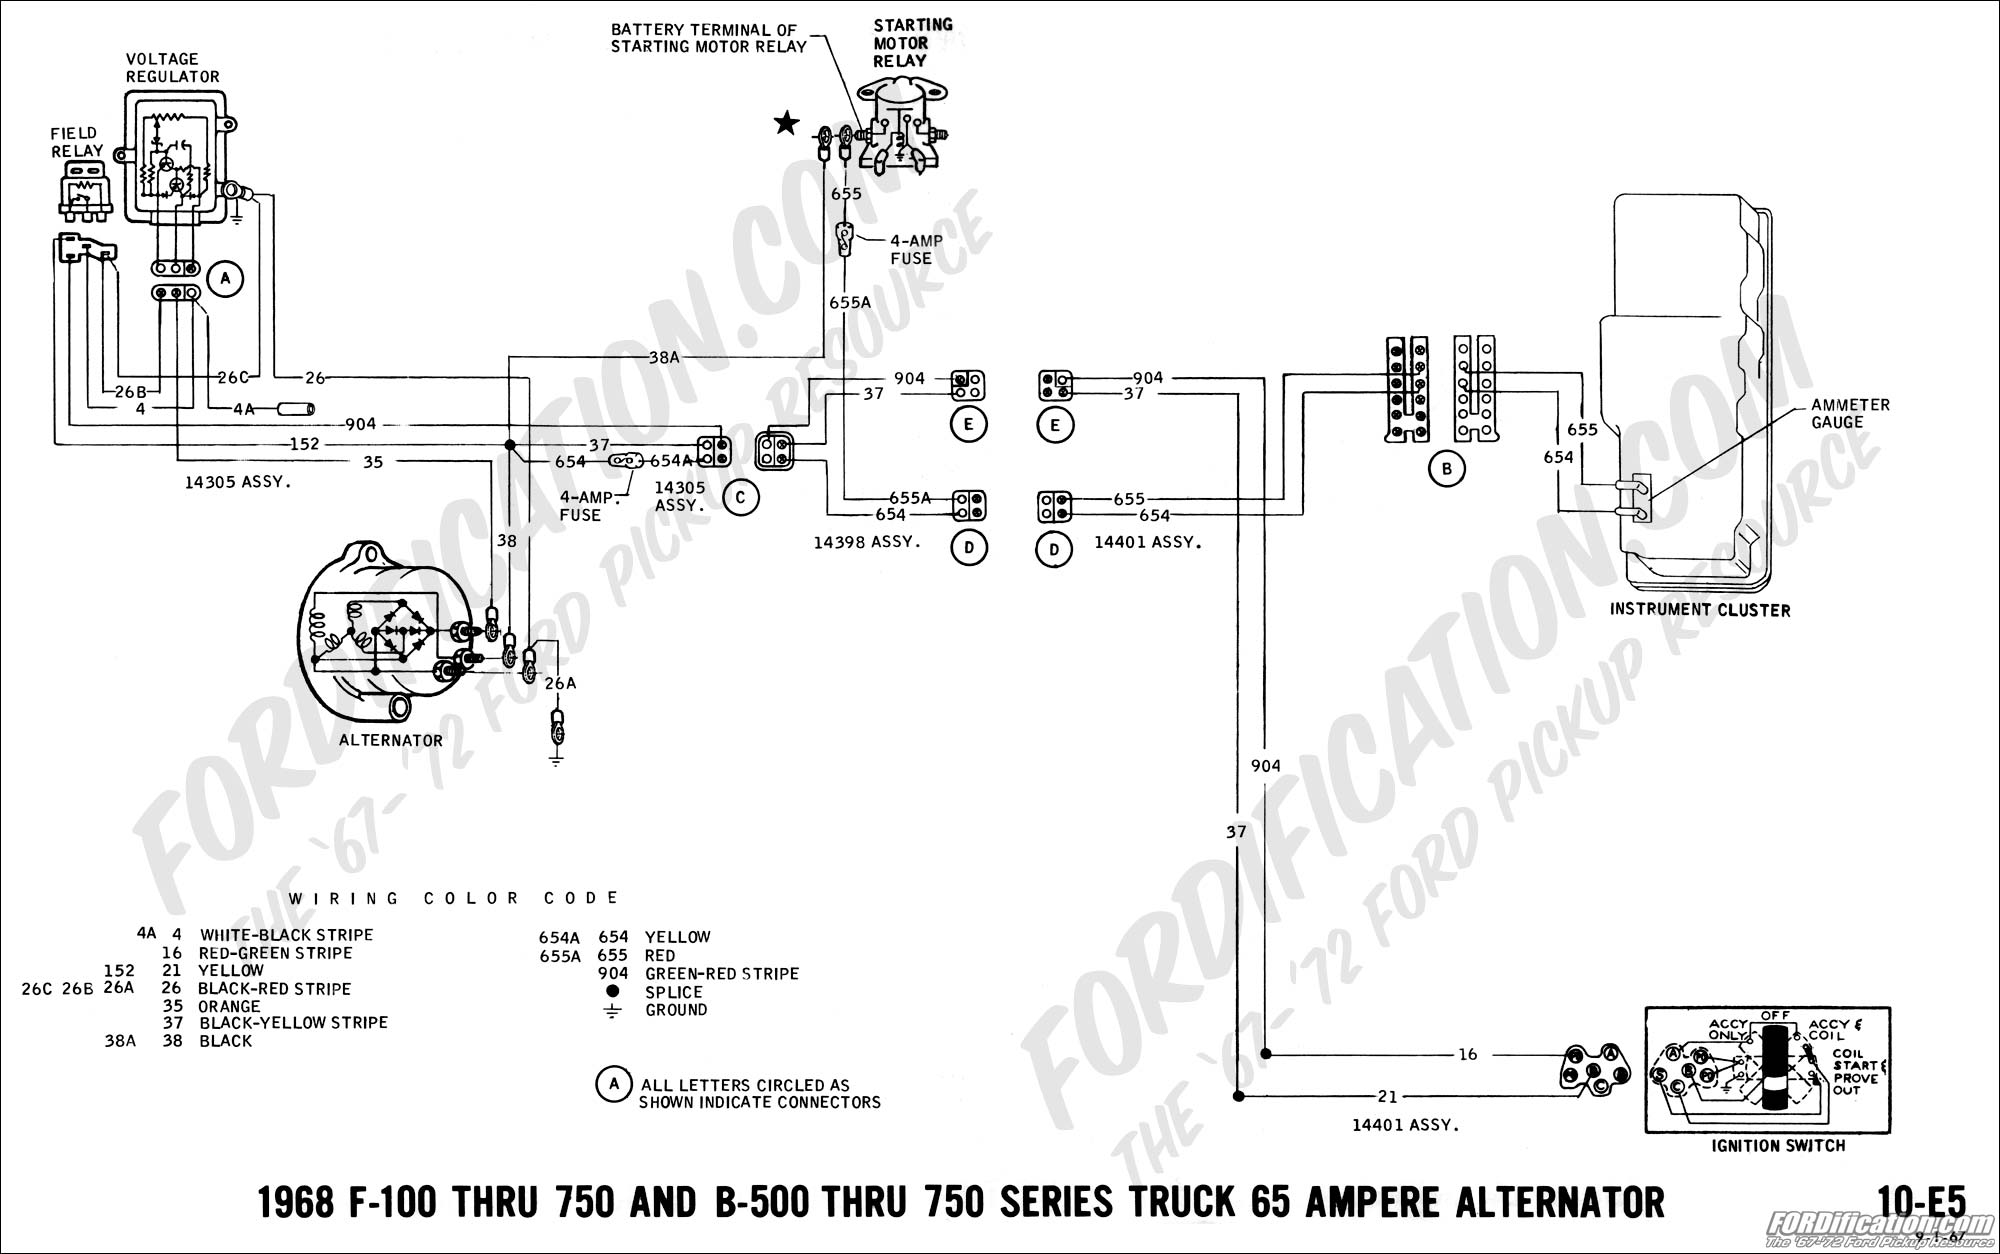 68 07 ford truck technical drawings and schematics section h wiring 1988 ford ranger alternator wiring diagram at alyssarenee.co